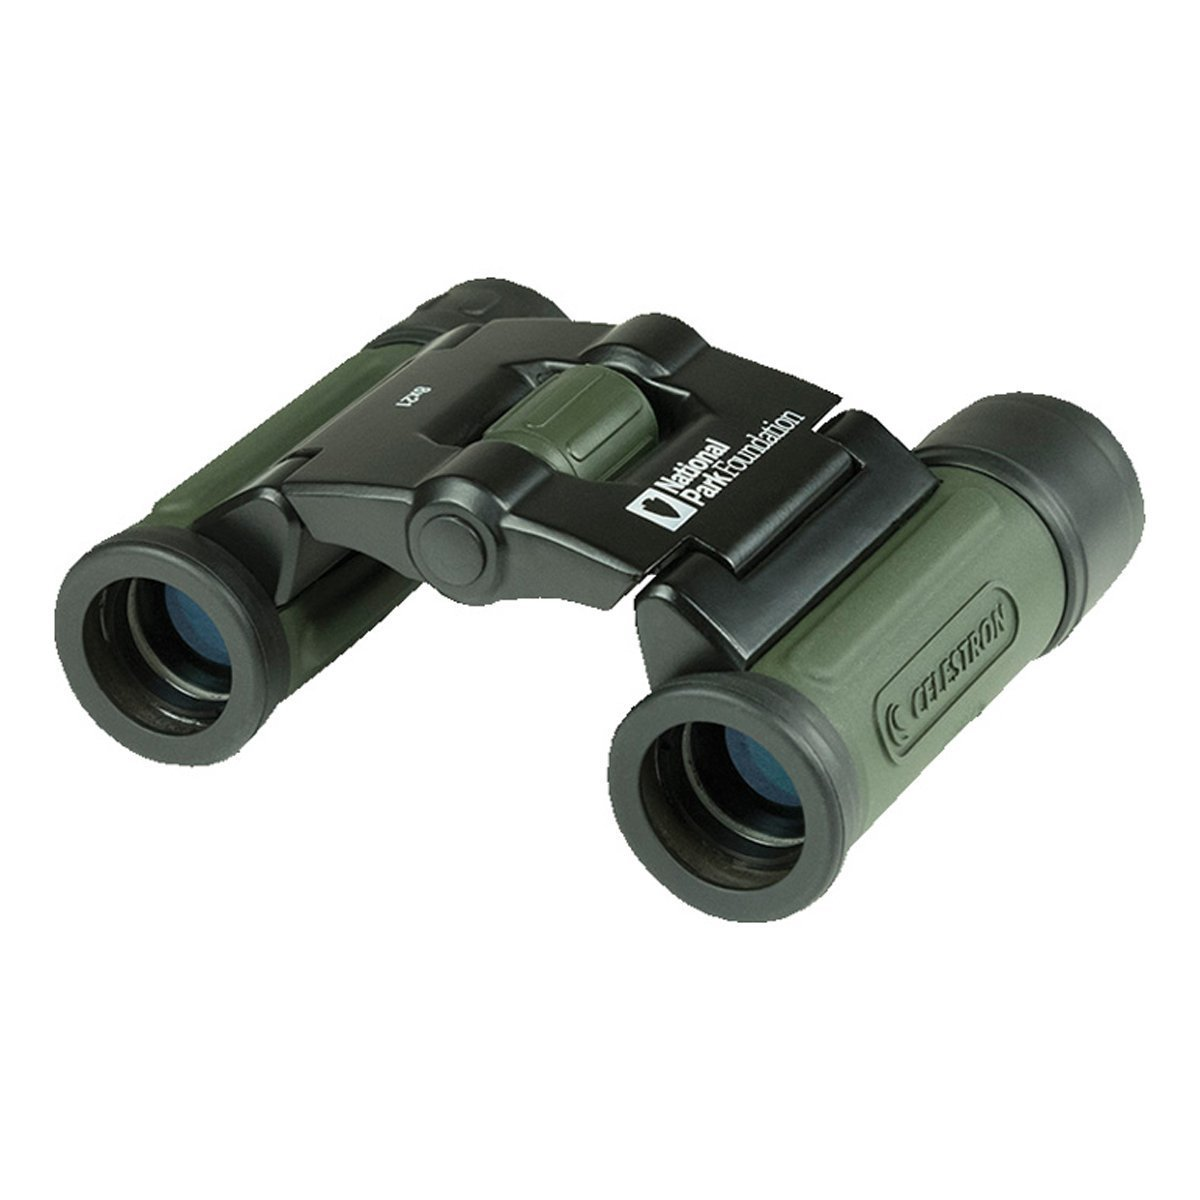 Celestron National Park Foundation 8x21 Binoculars